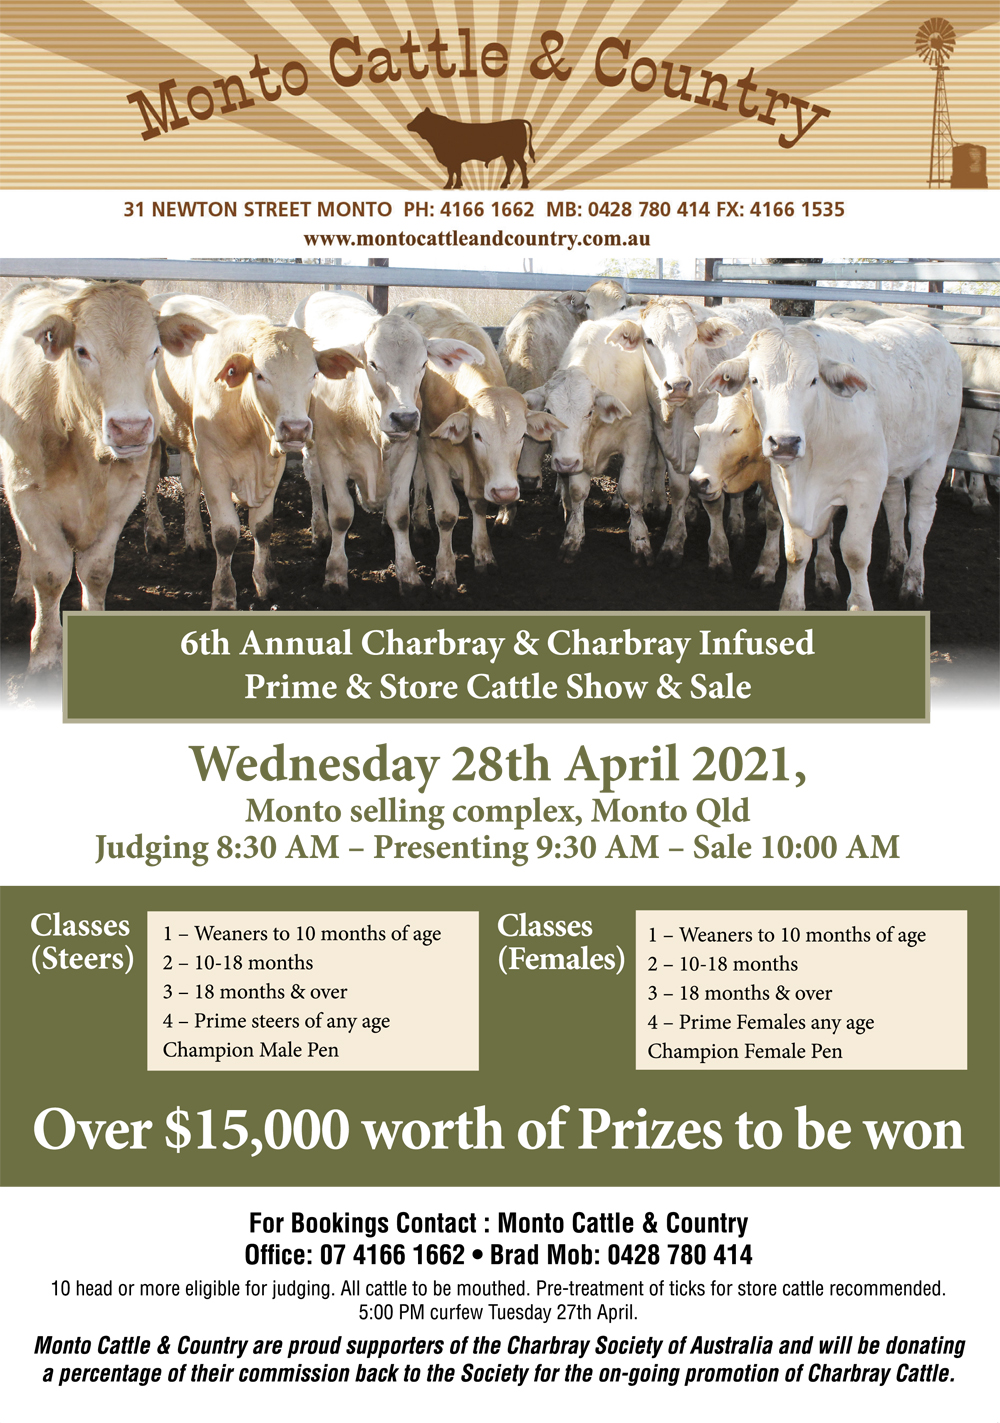 6th Annual Charbray & Charbray Infused Prime & Store Cattle Show & Sale